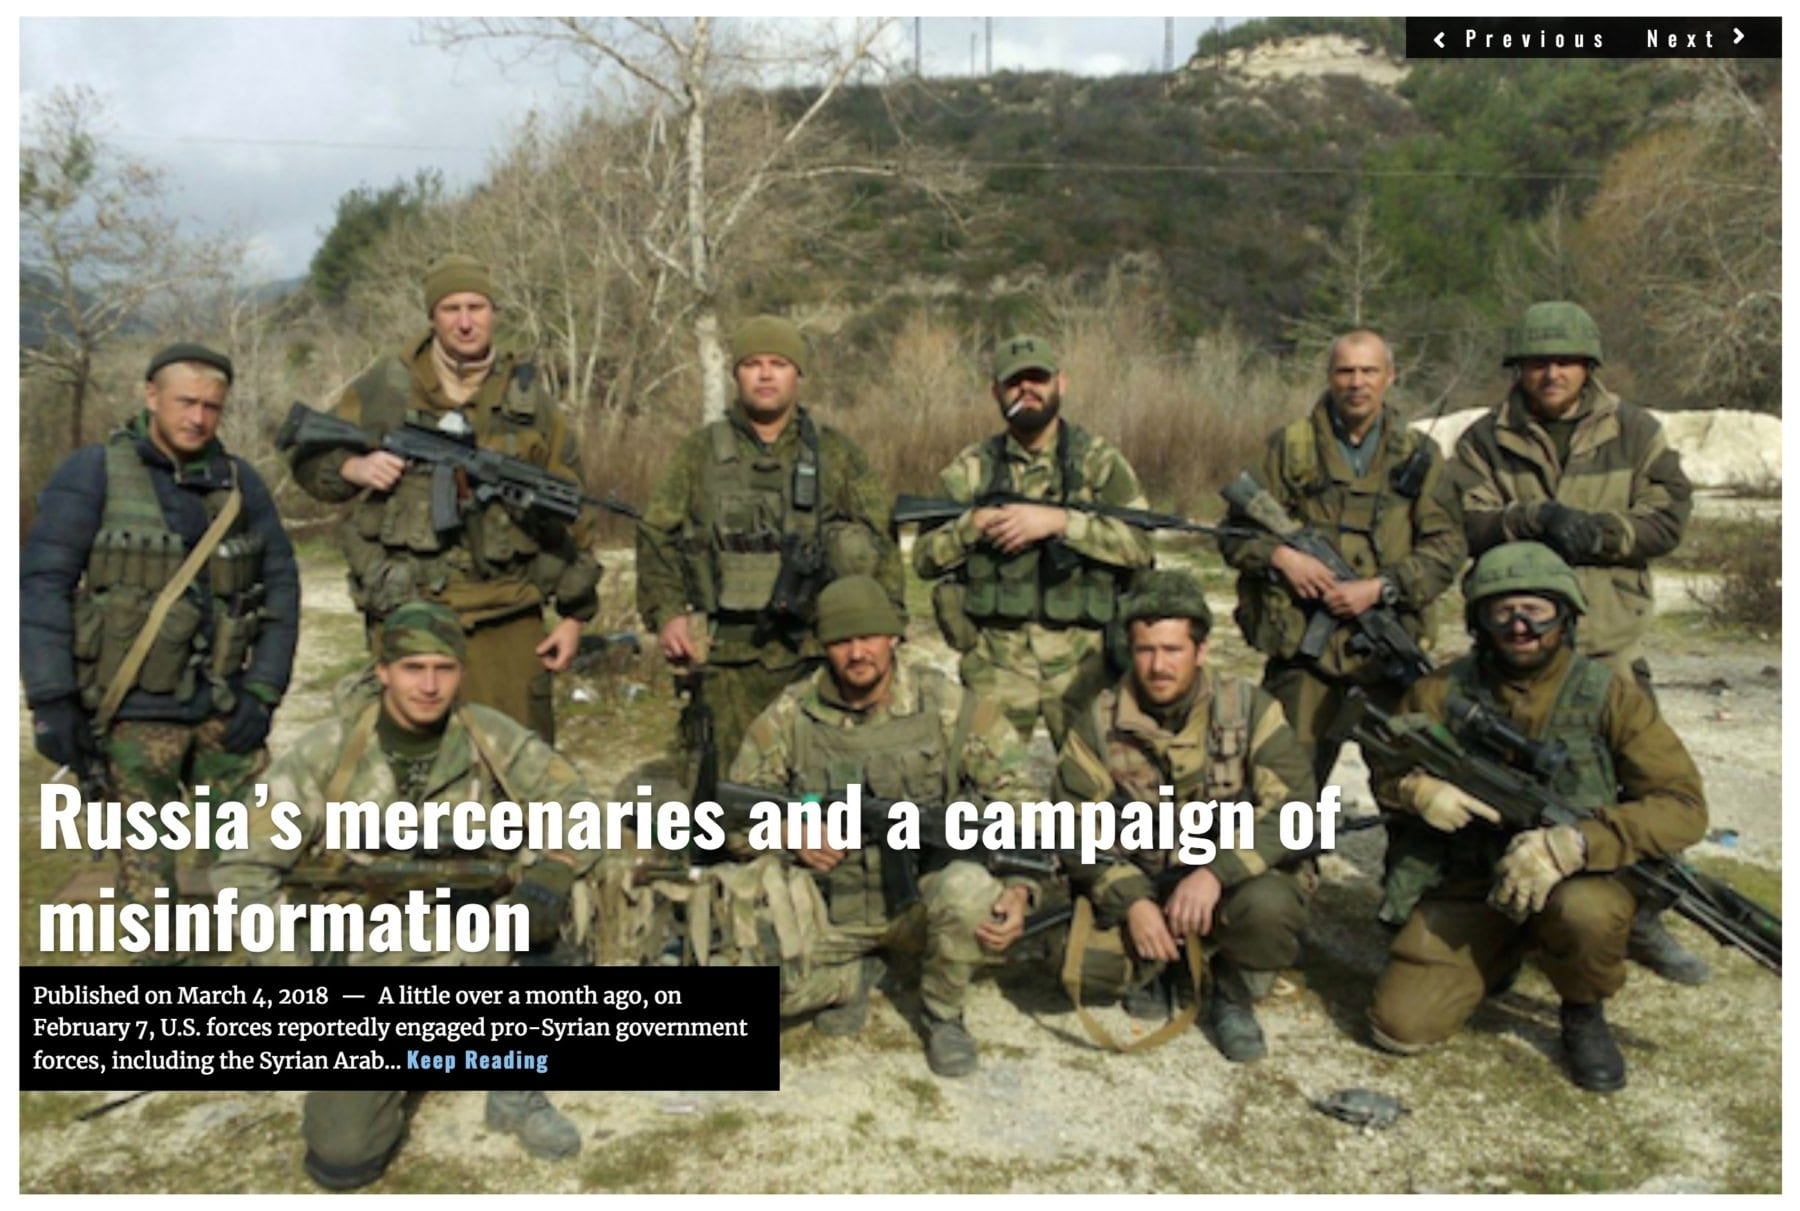 Image Lima Charlie News Headline Russia mercenaries MAR 4 2018